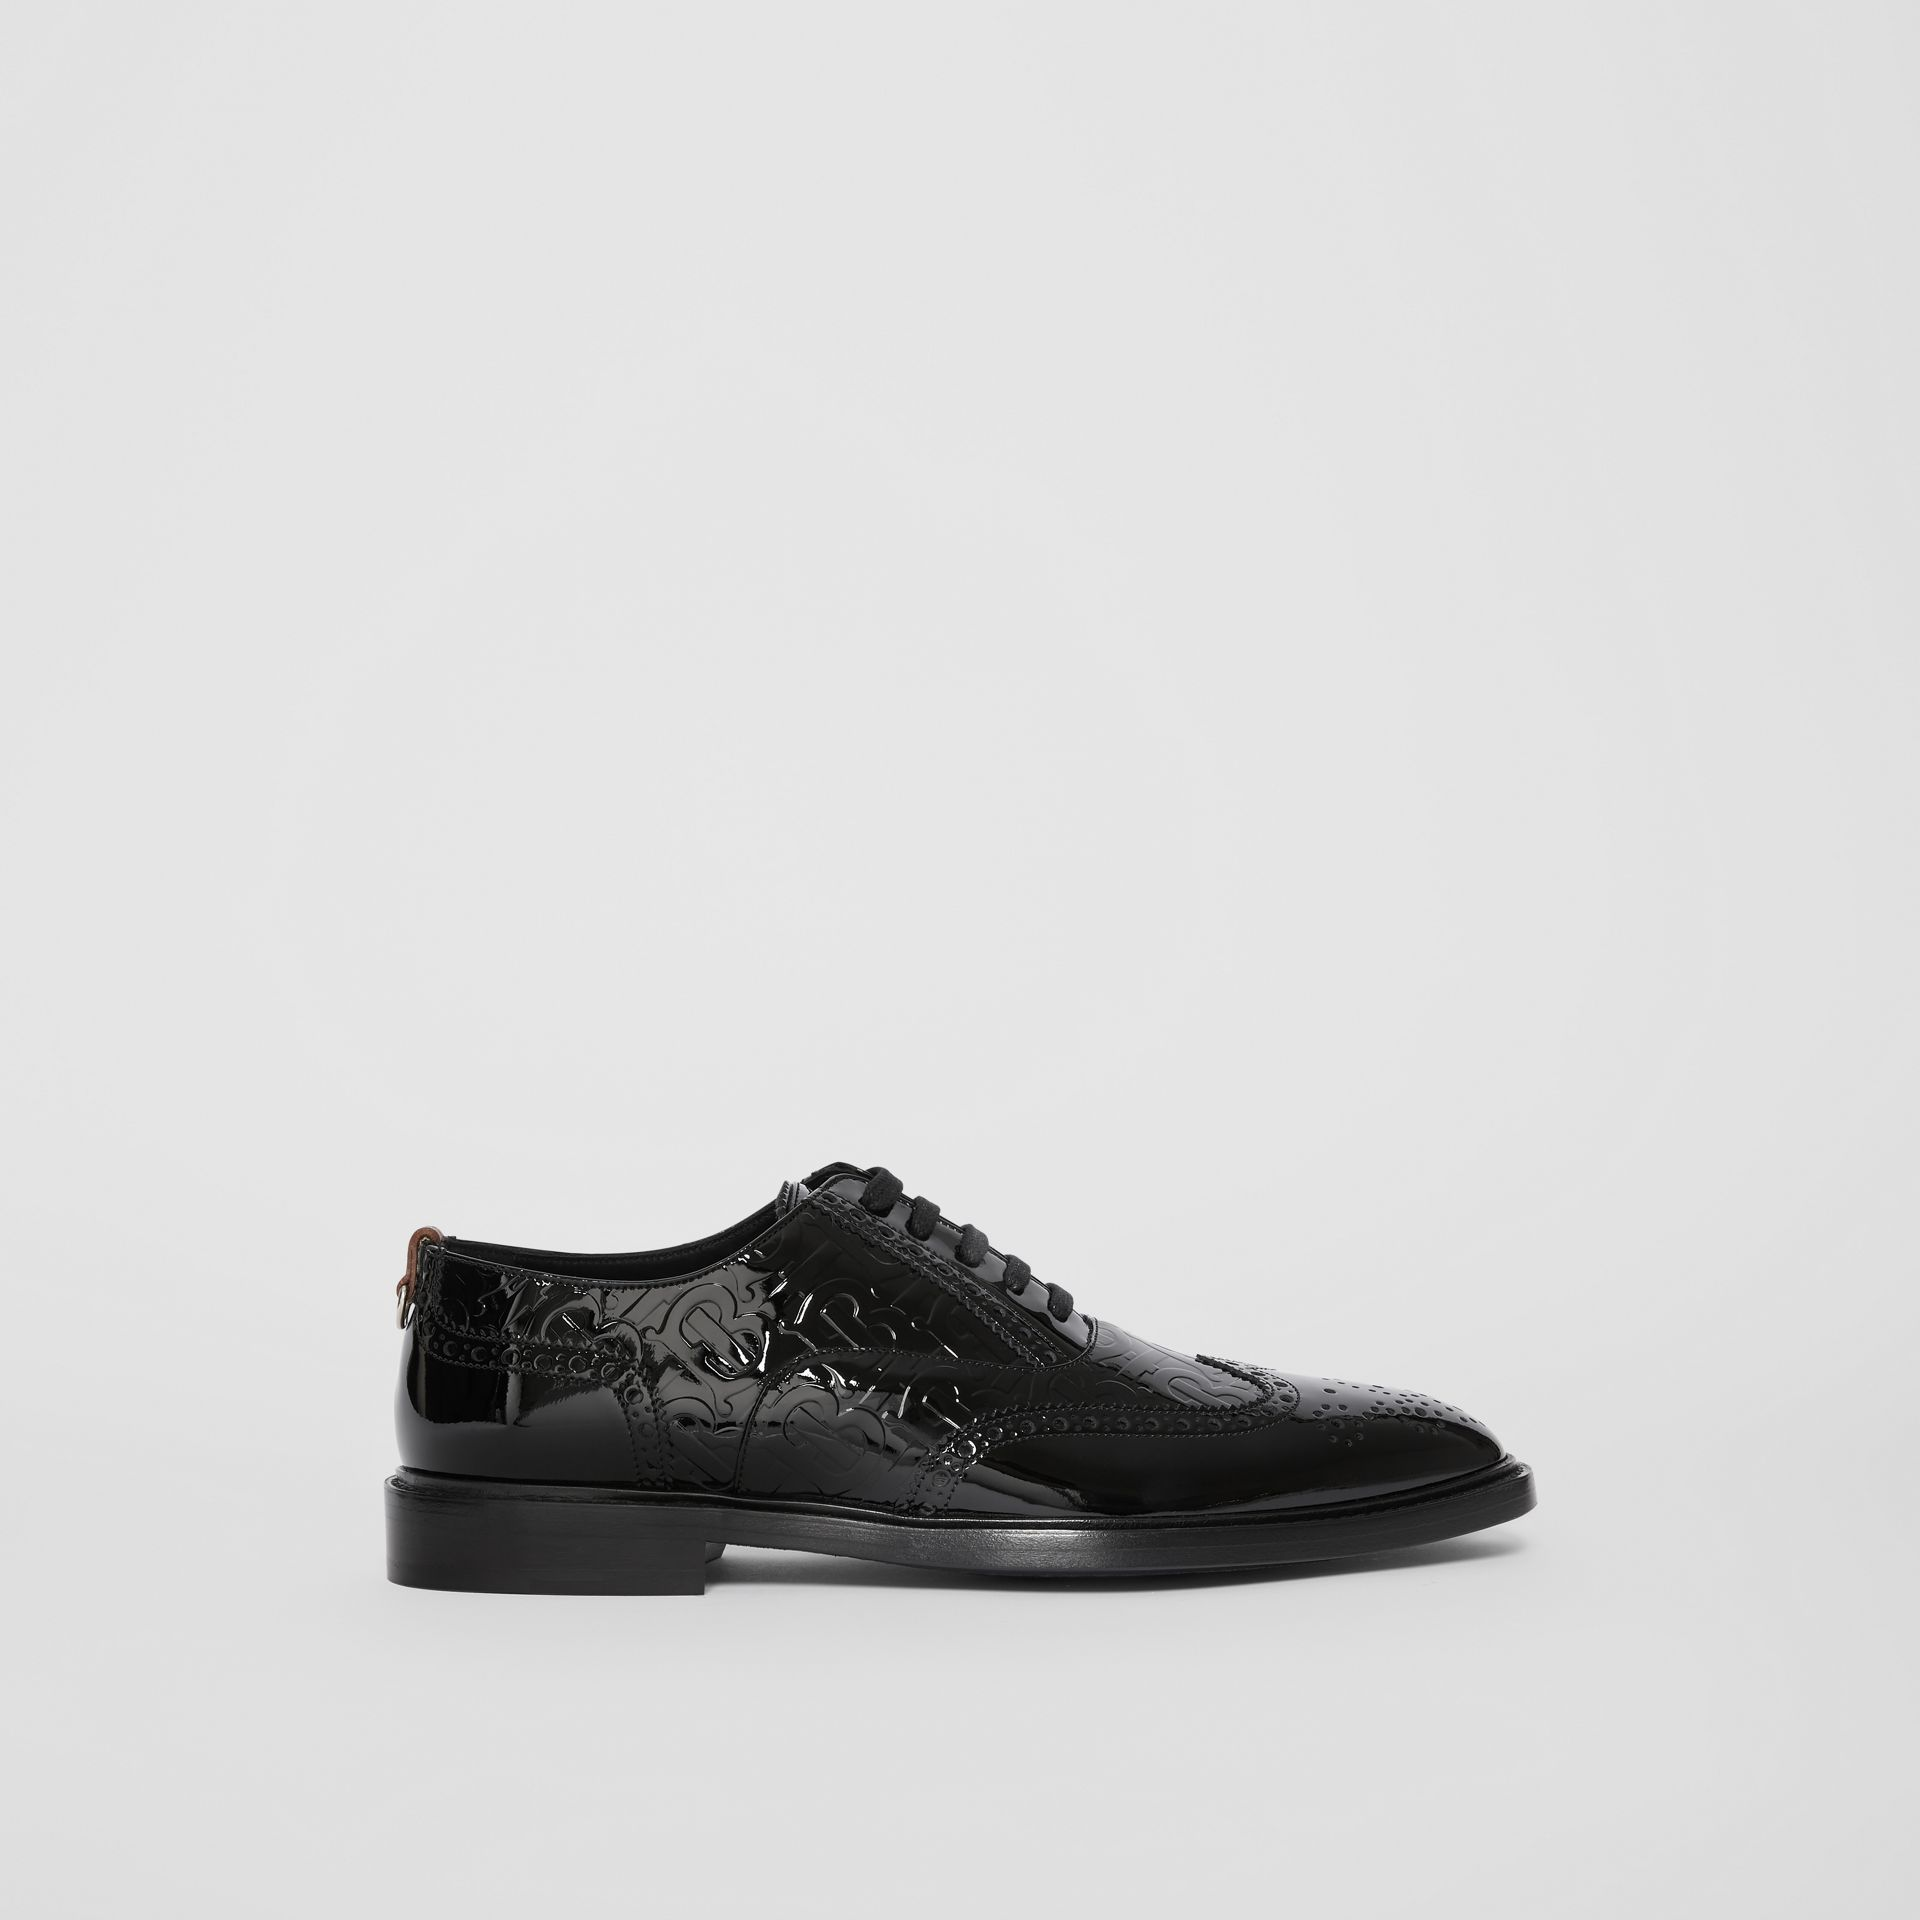 D-ring Detail Monogram Patent Leather Brogues in Black - Men | Burberry Hong Kong S.A.R - gallery image 5